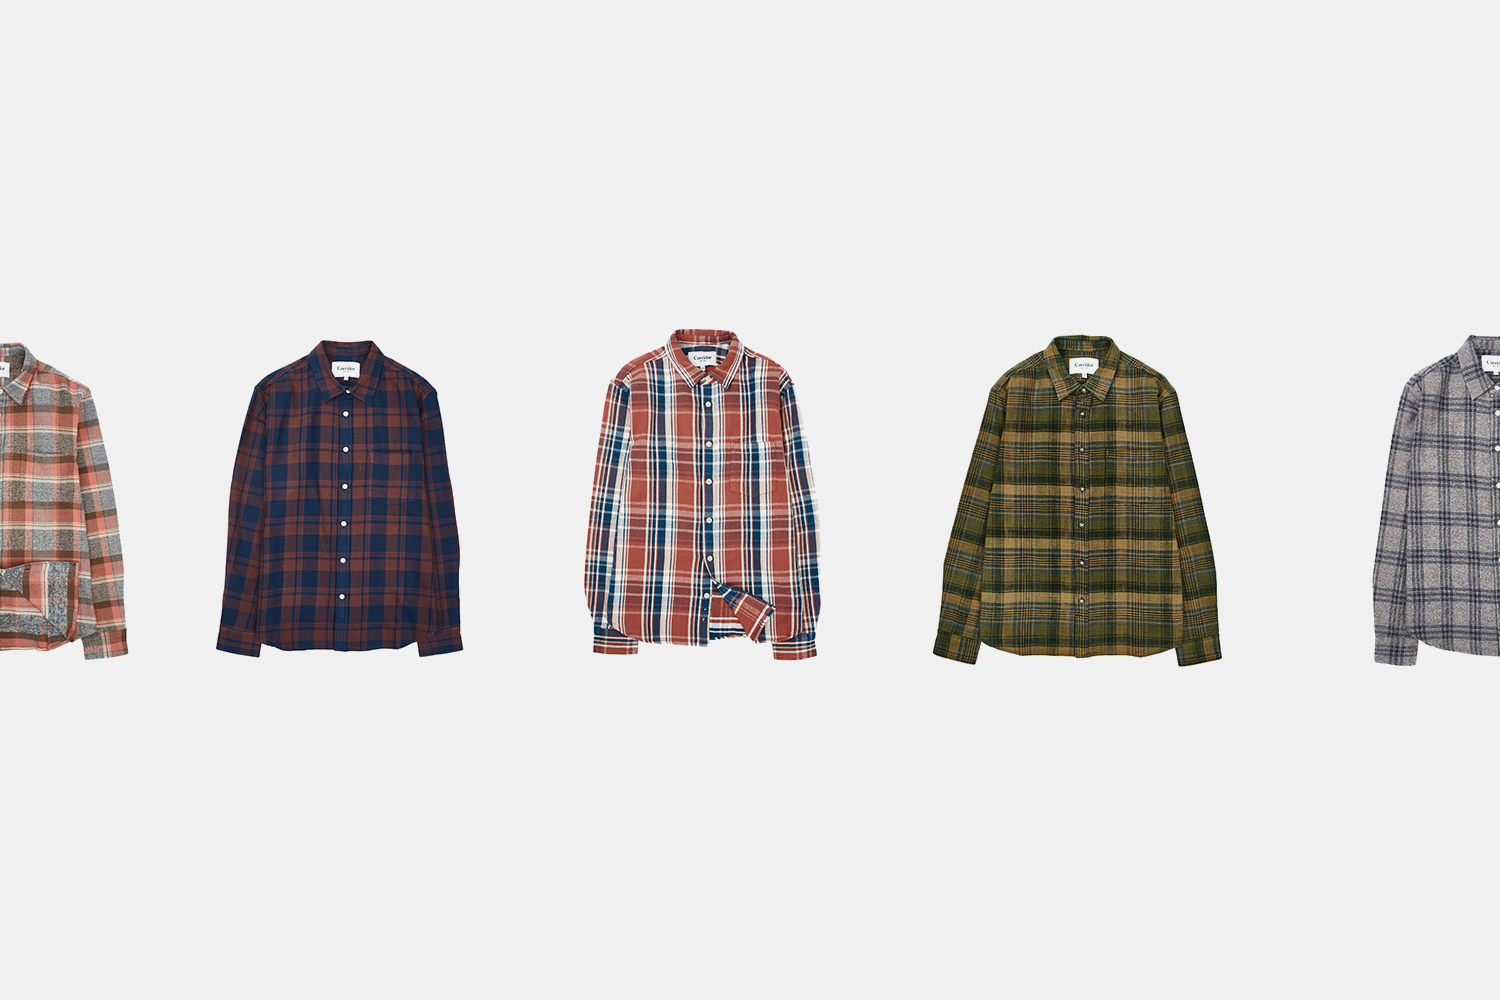 Deal: Take an Extra 15% Off Select Plaid Styles at Corridor